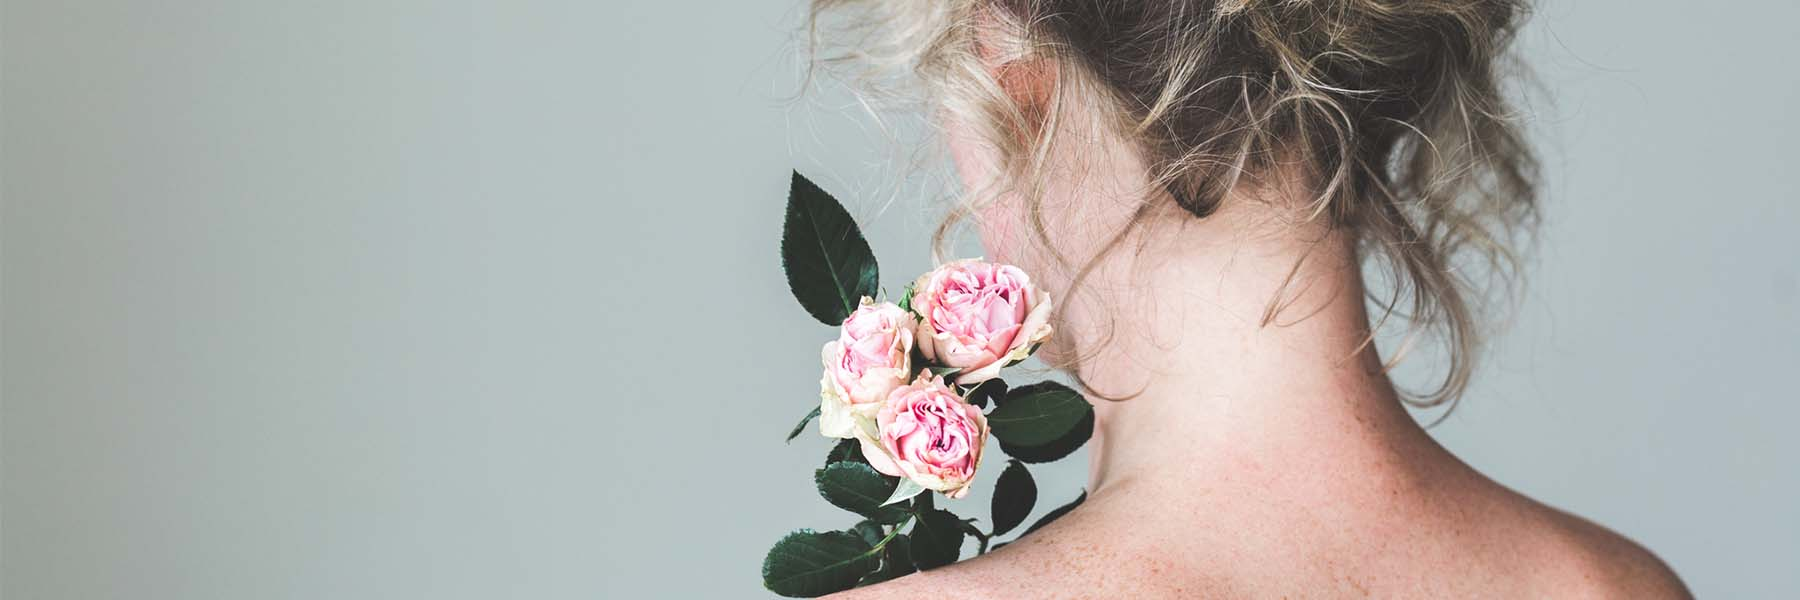 back view of womans neck and holding pink roses